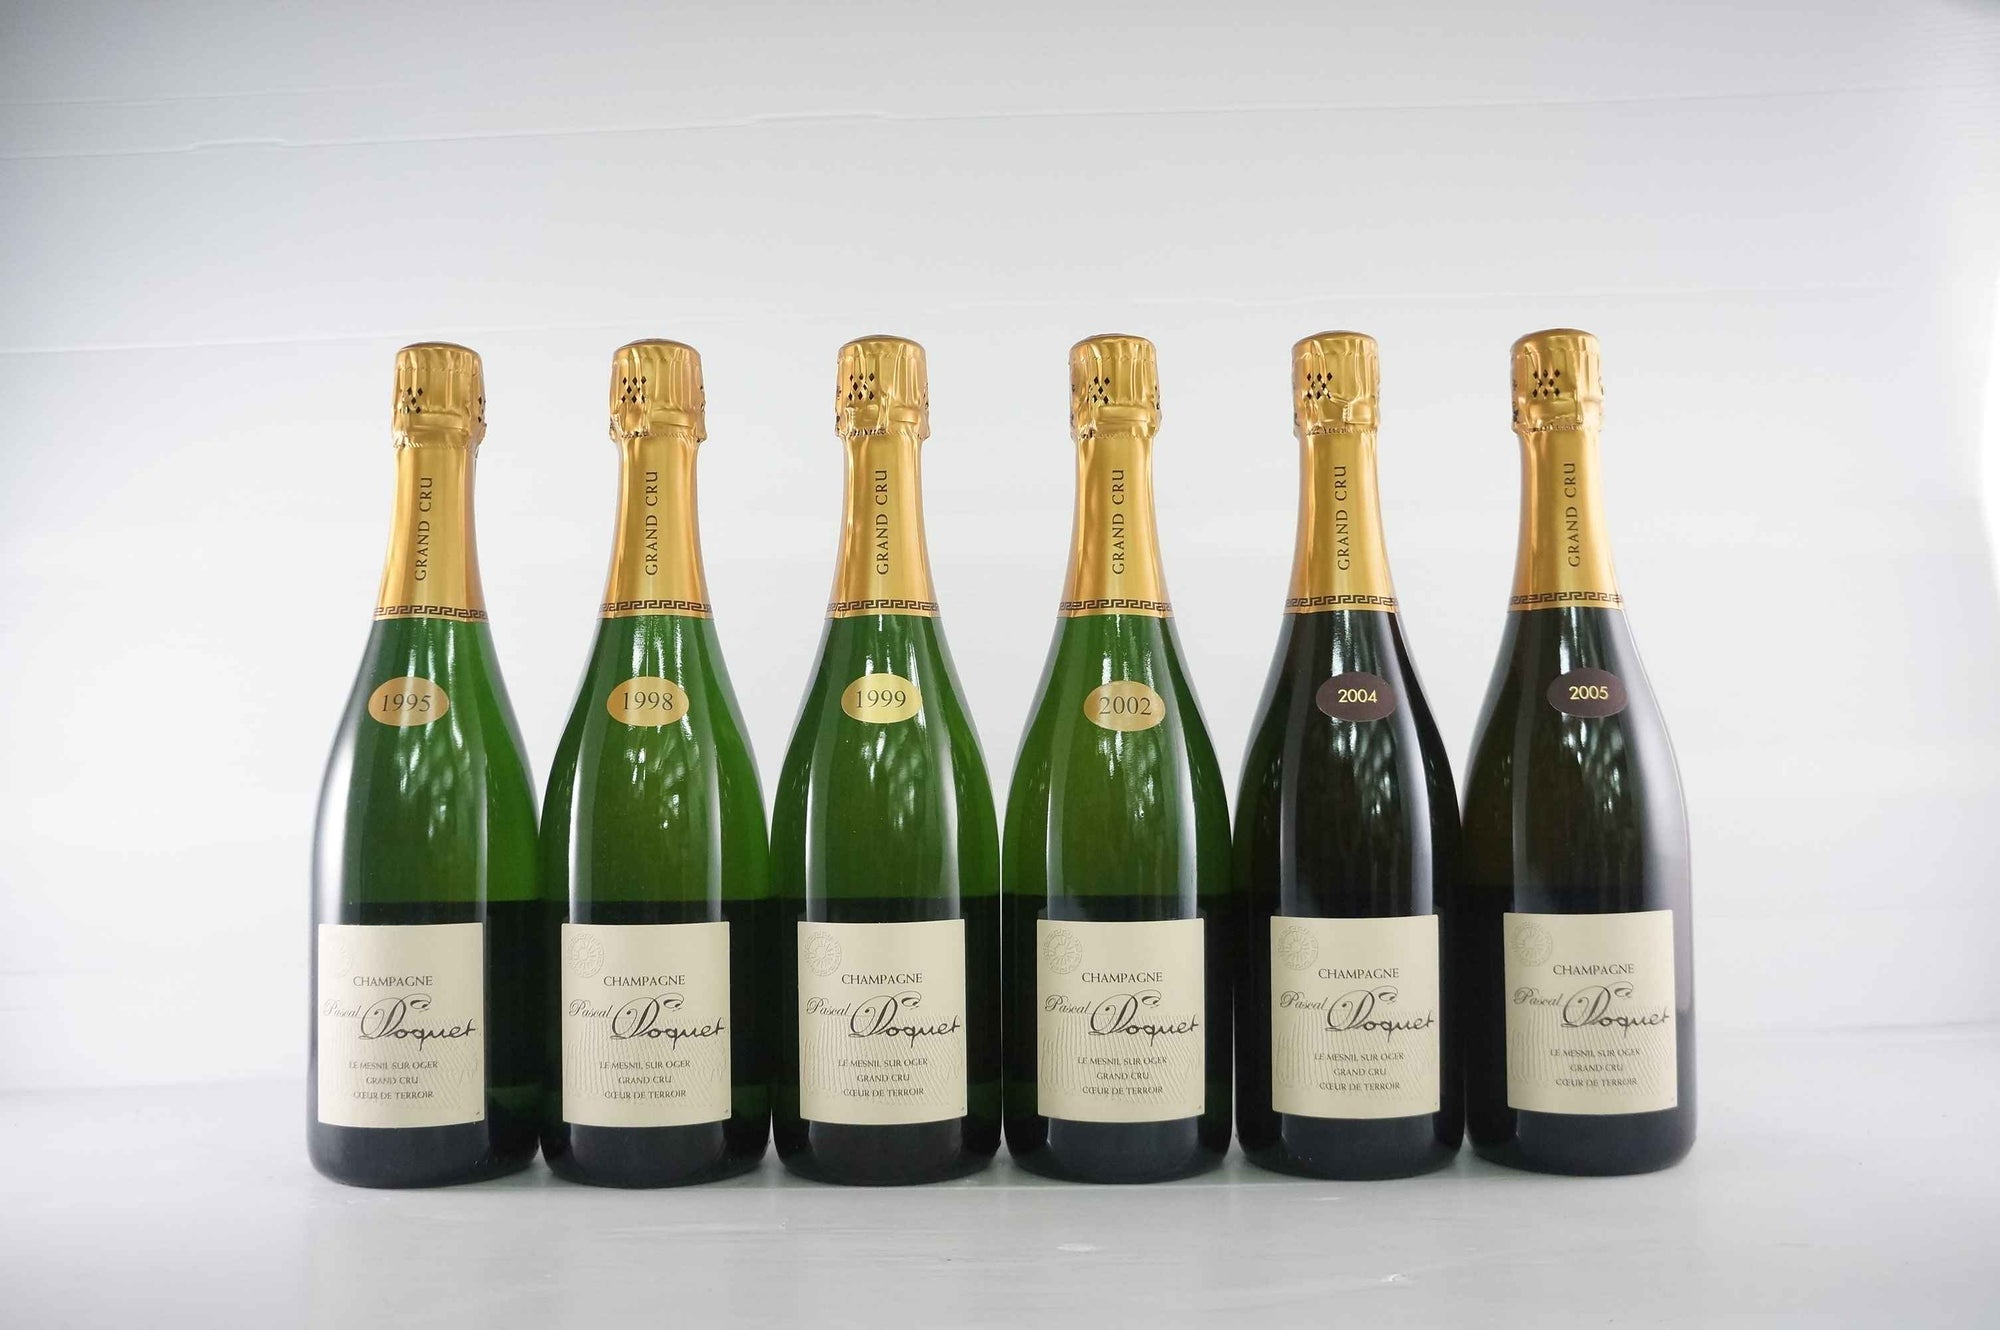 Pascal Doquet Coeur de Terroir Blanc de Blancs Le Mesnil Sur Oger Grand Cru Assortment Case (95, 98, 99, 02, 04, 05) MV